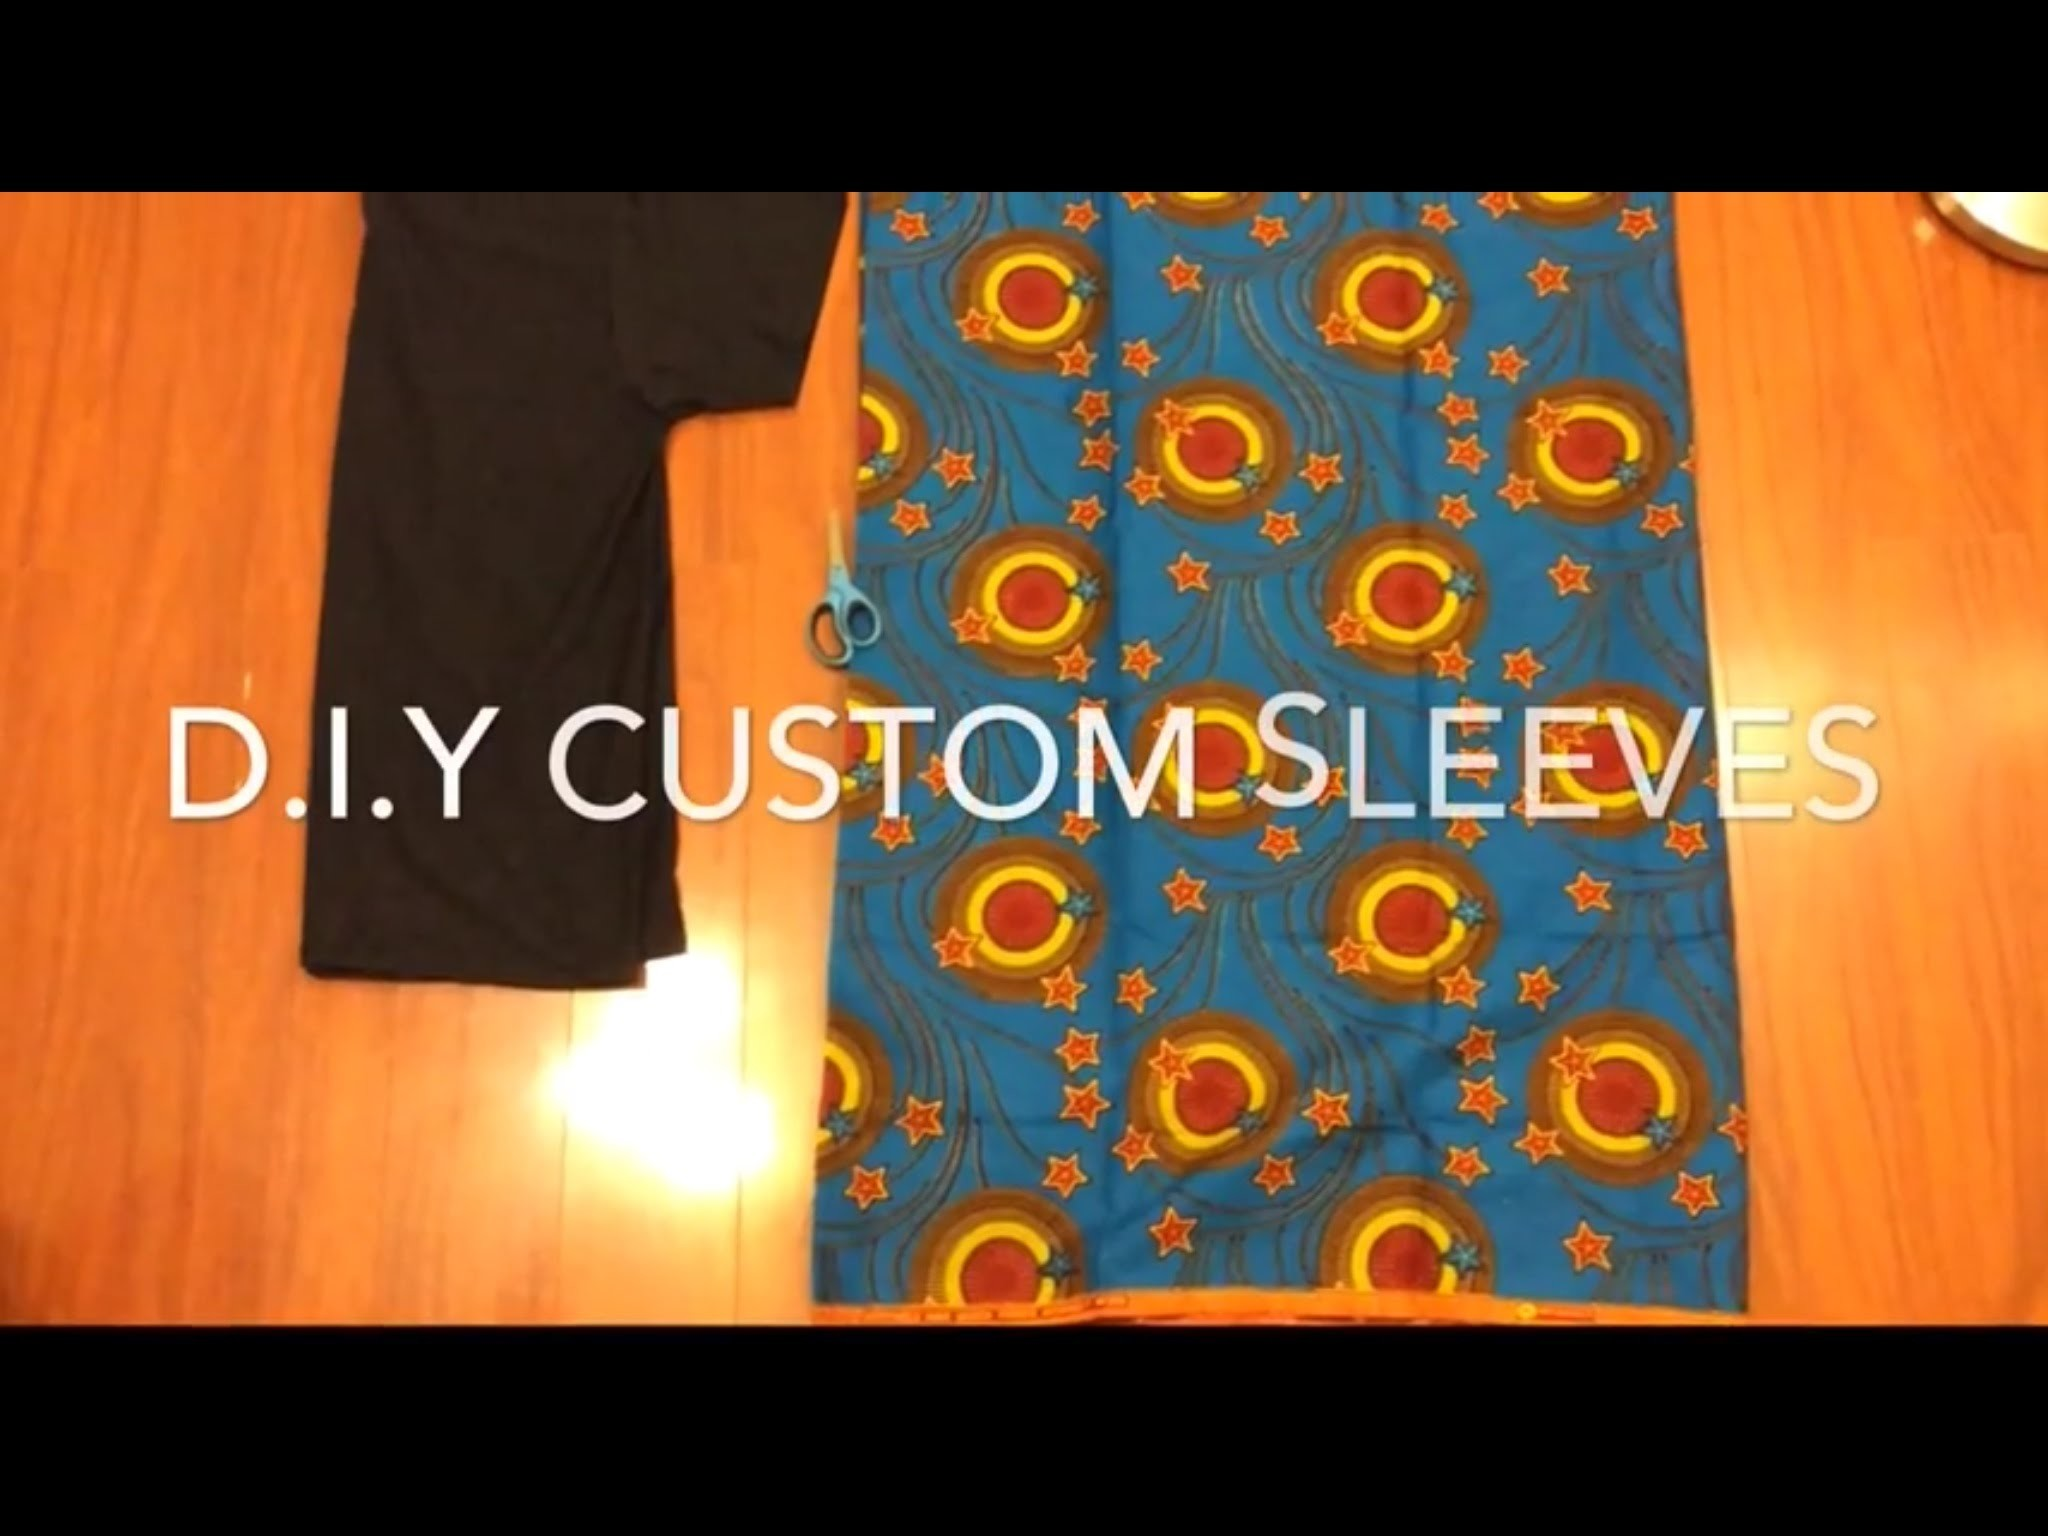 Custom Sleeve T-Shirts (D.I.Y)